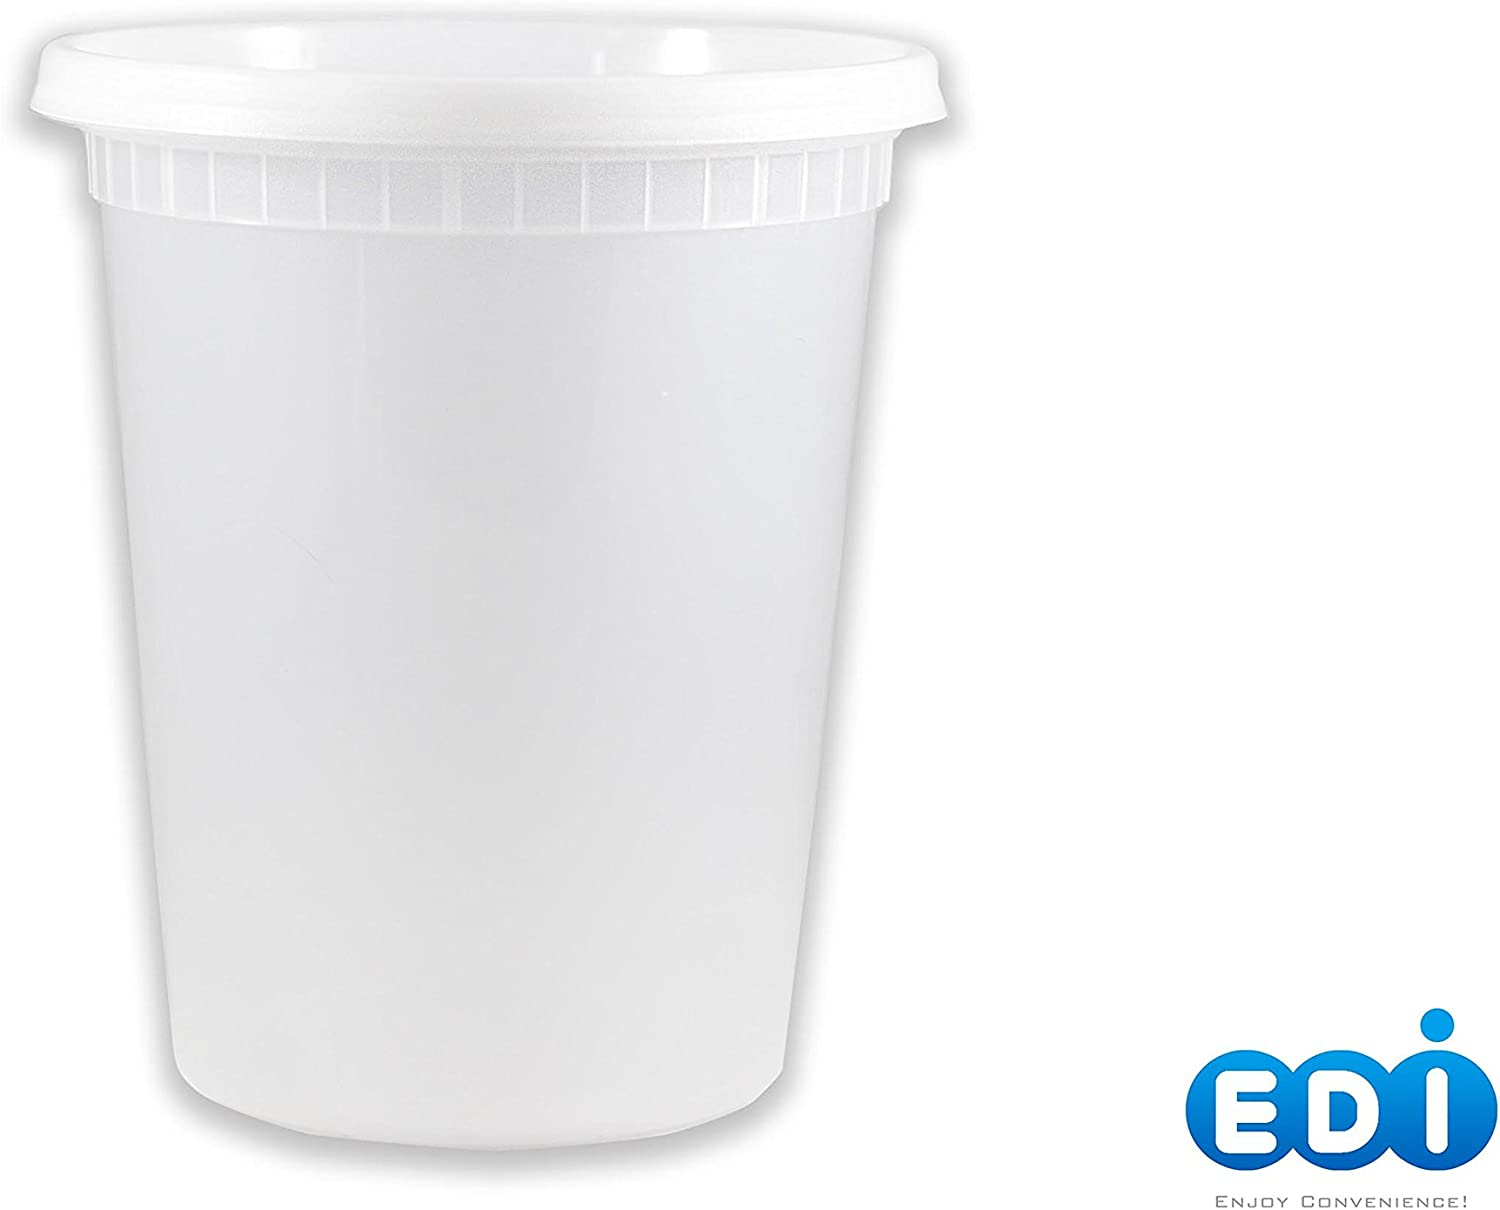 EDI 32 oz Deli Containers with Lids Clear Plastic Food Storage Container Premium Heavy-Duty Quality, Leak proof&Freezer&Dishwasher Safe (20, 32 OZ)